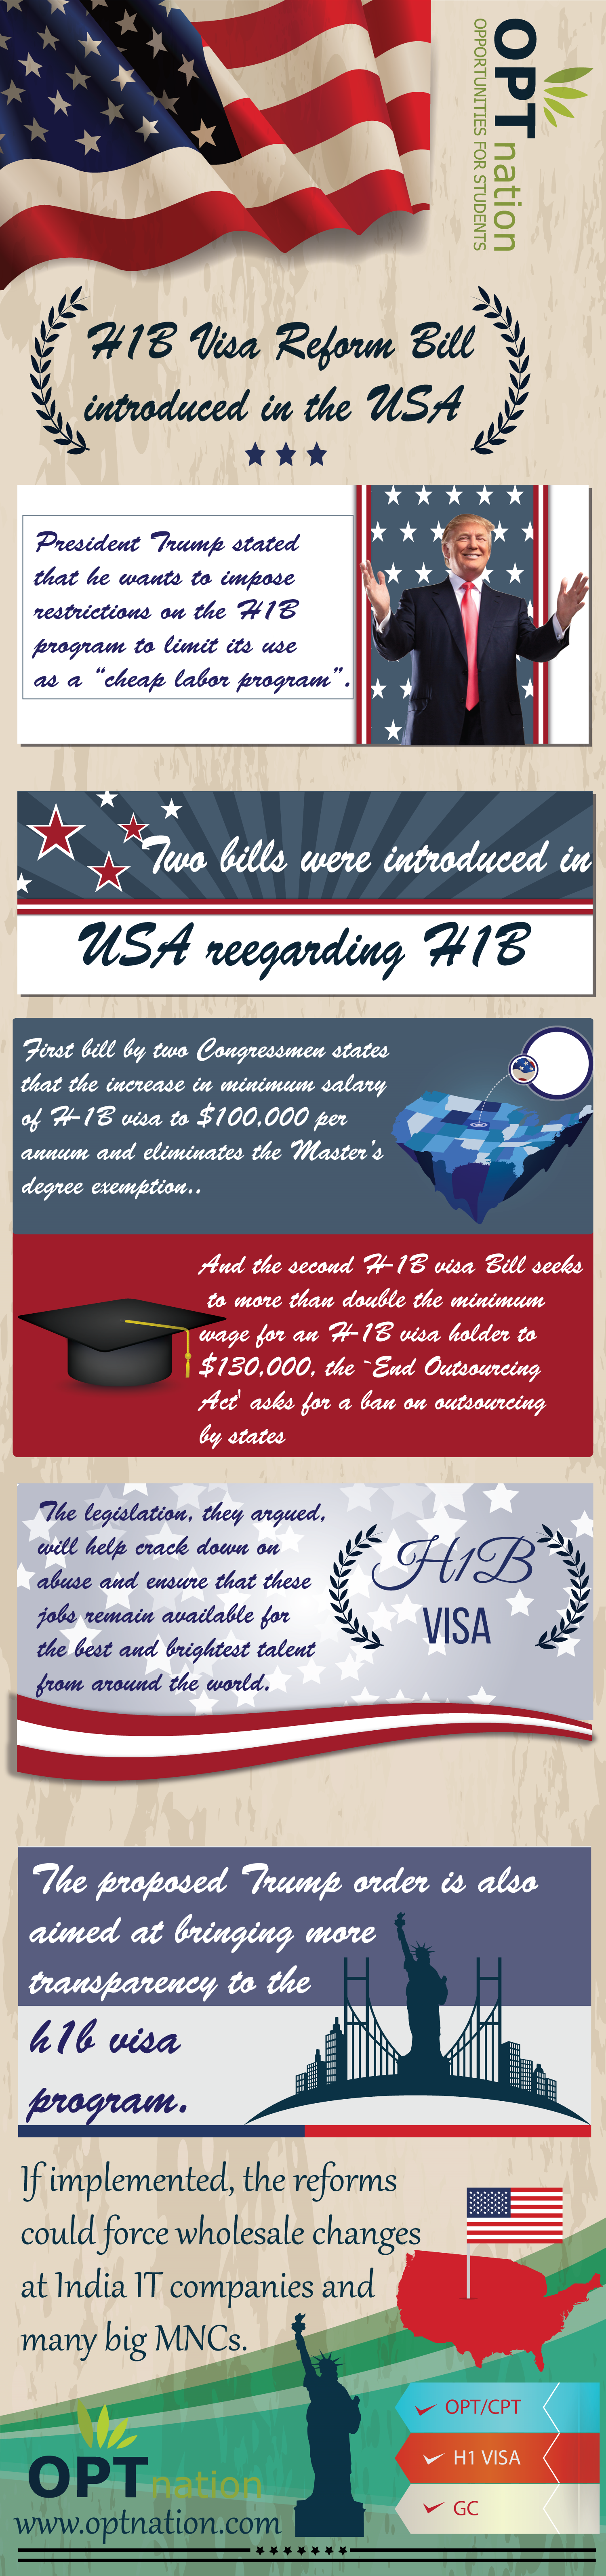 H1B Reform Bill introduced in USA  Infographic